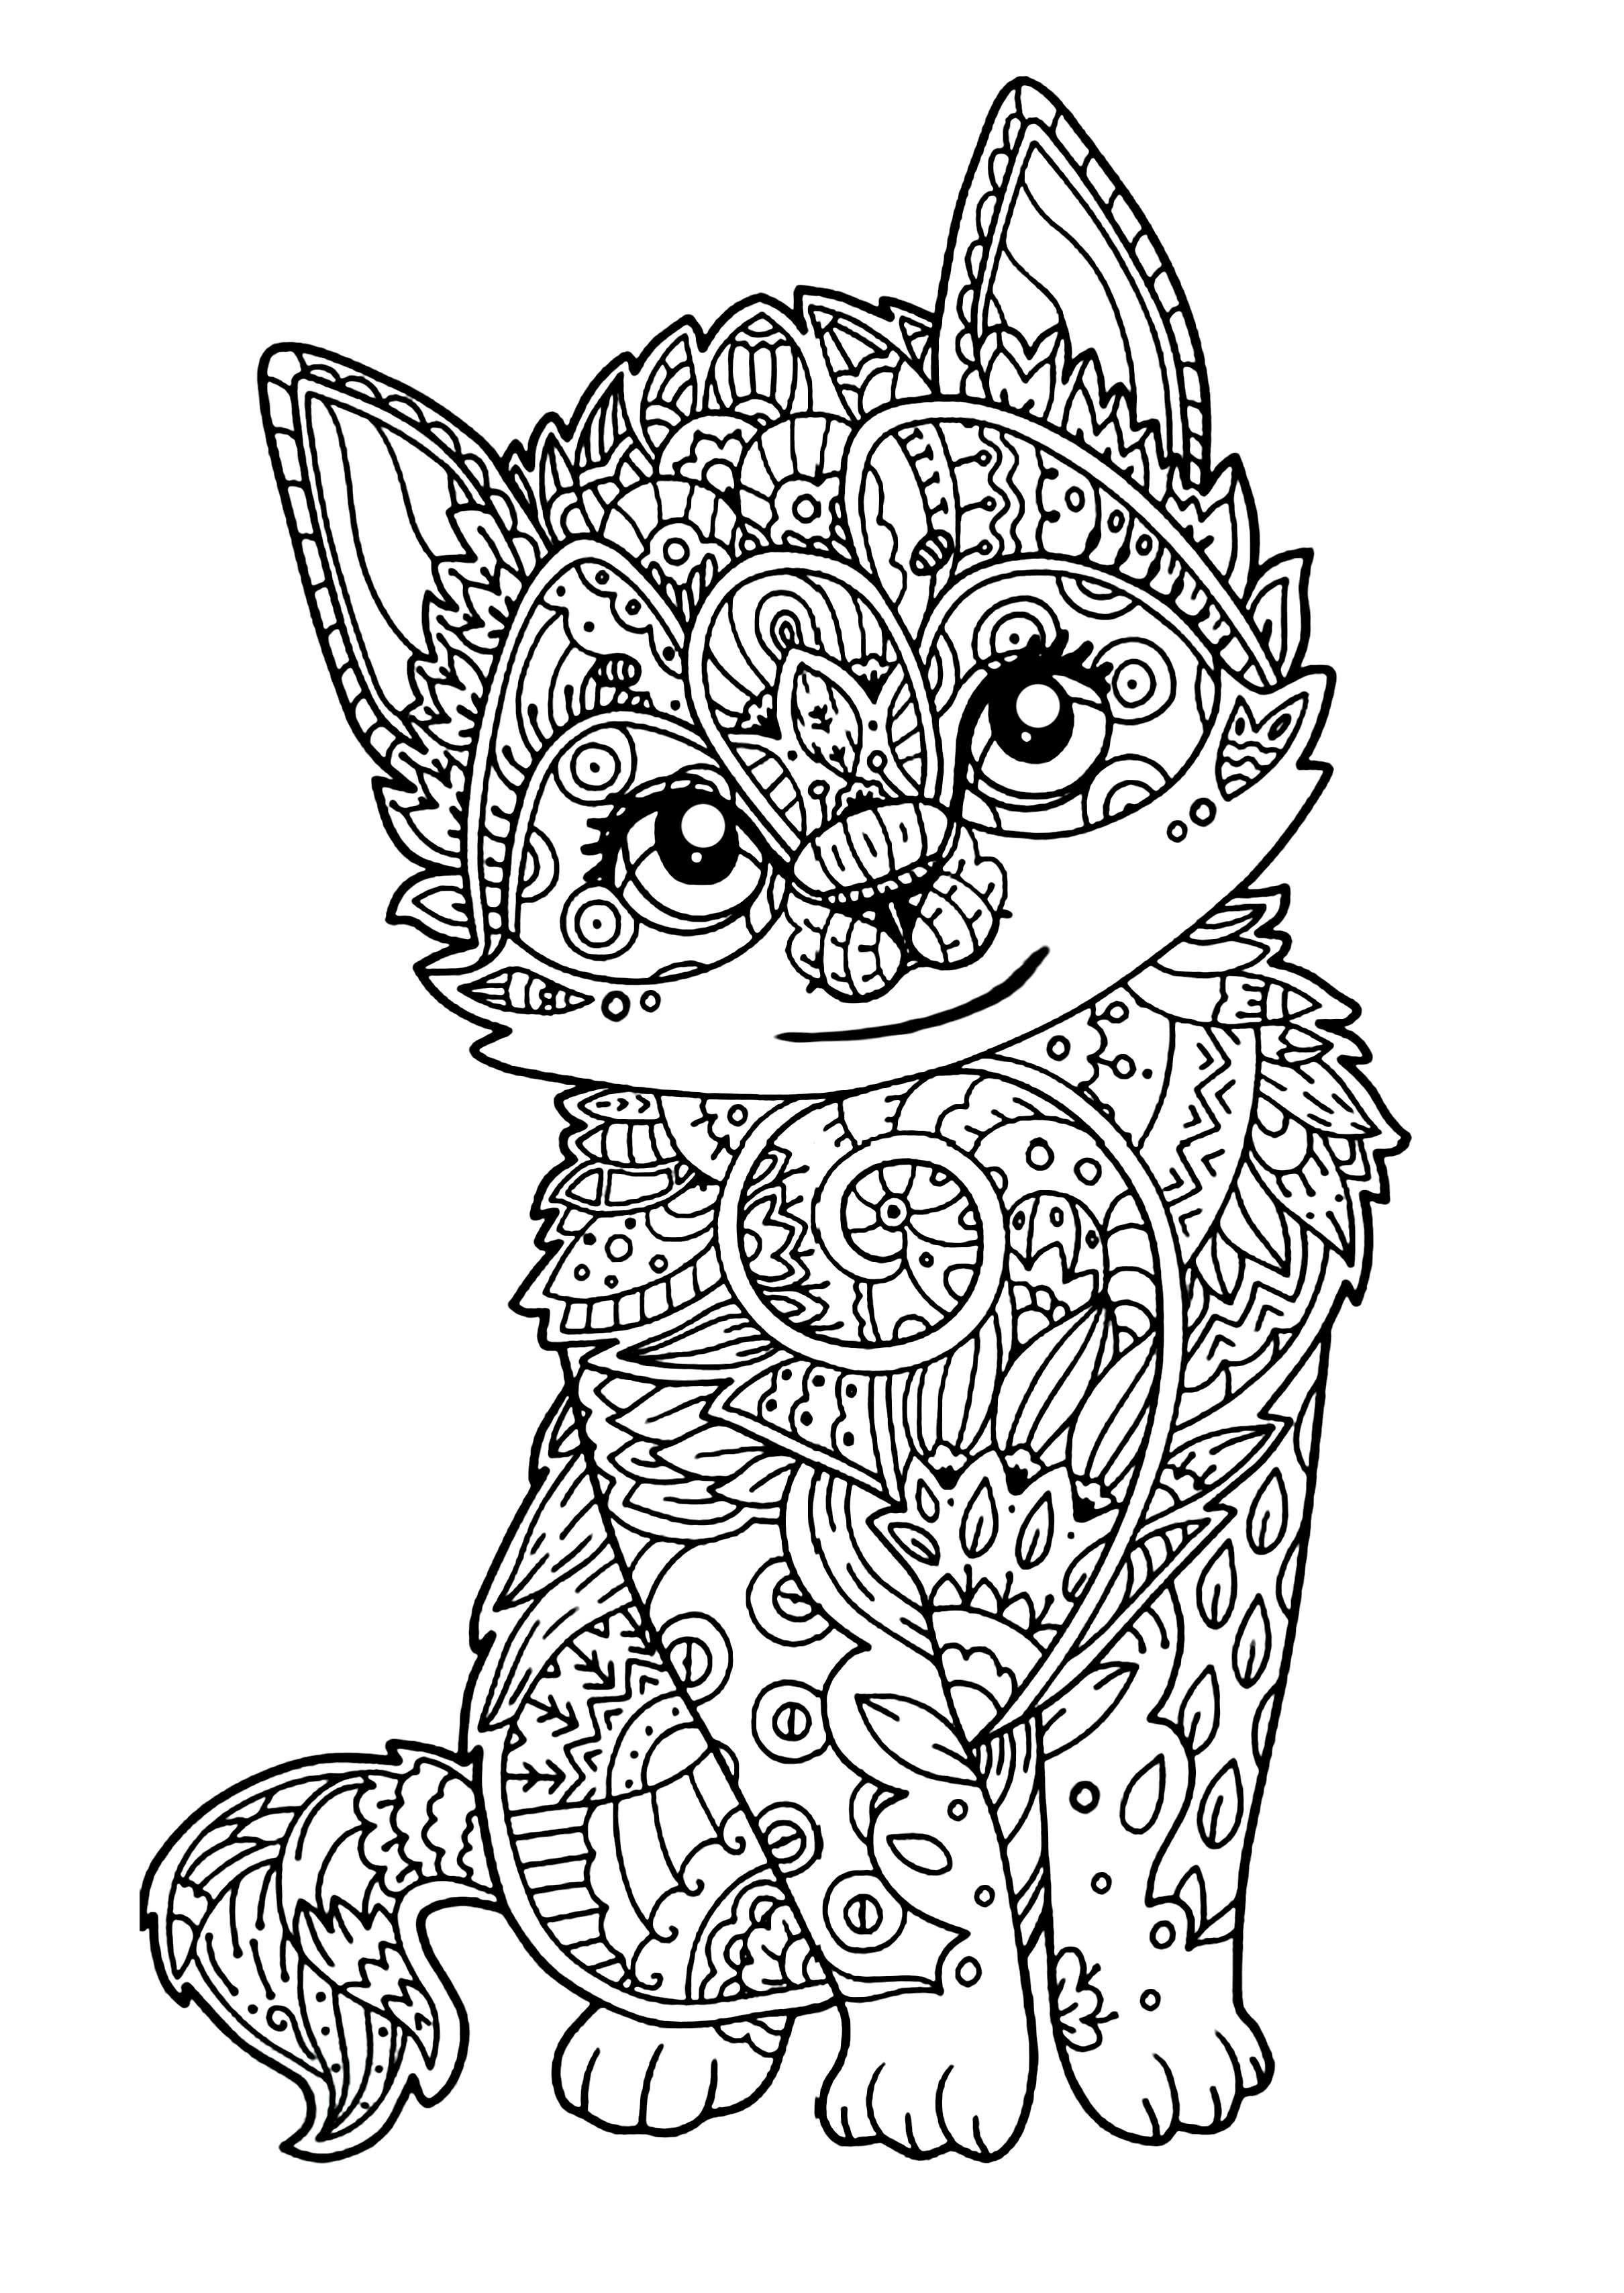 Coloring Mandala Cat Printllllll L Duilawyerlosangeles Zoo Animal Coloring Pages Kittens Coloring Animal Coloring Books